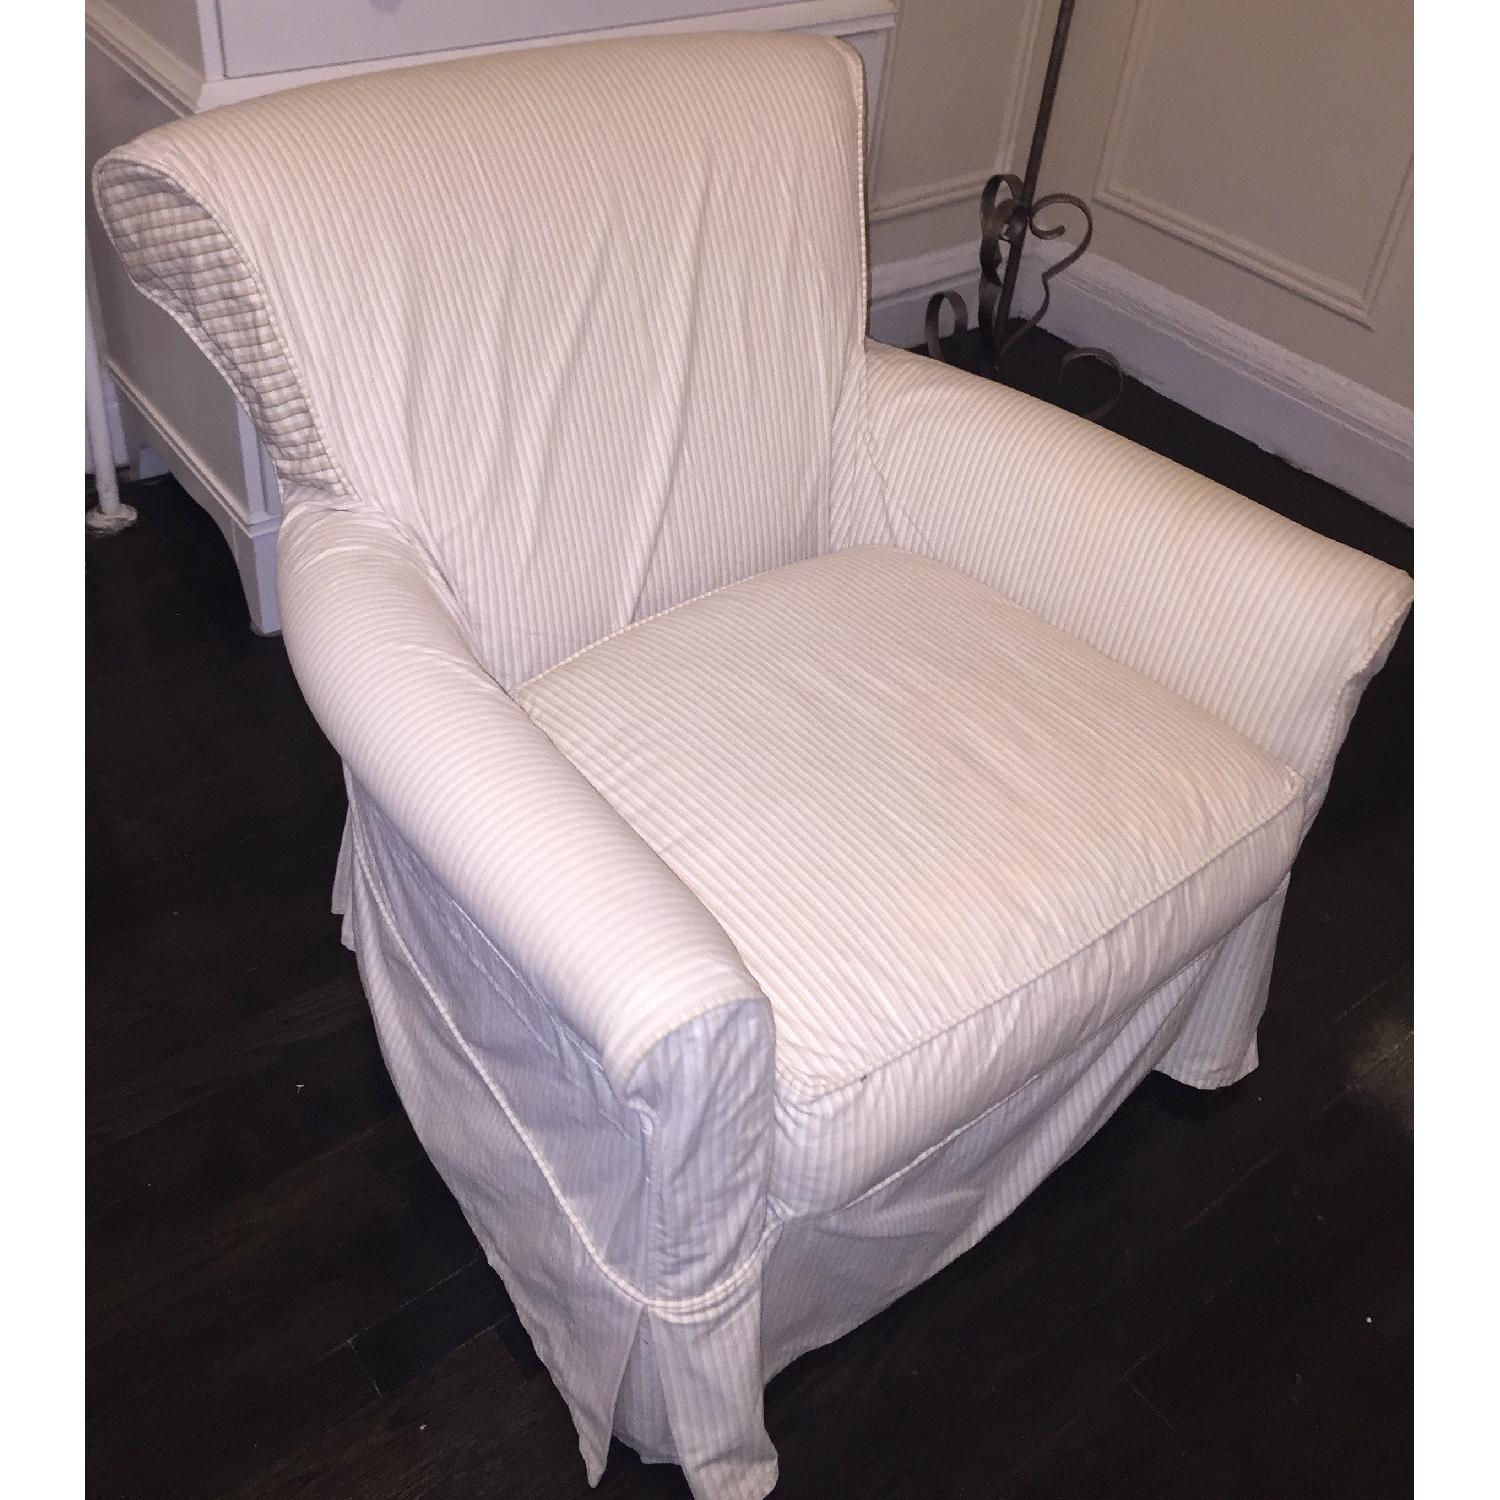 Crate & Barrel Avery Swivel Glider with w/ Pinstripe Slipcover-12